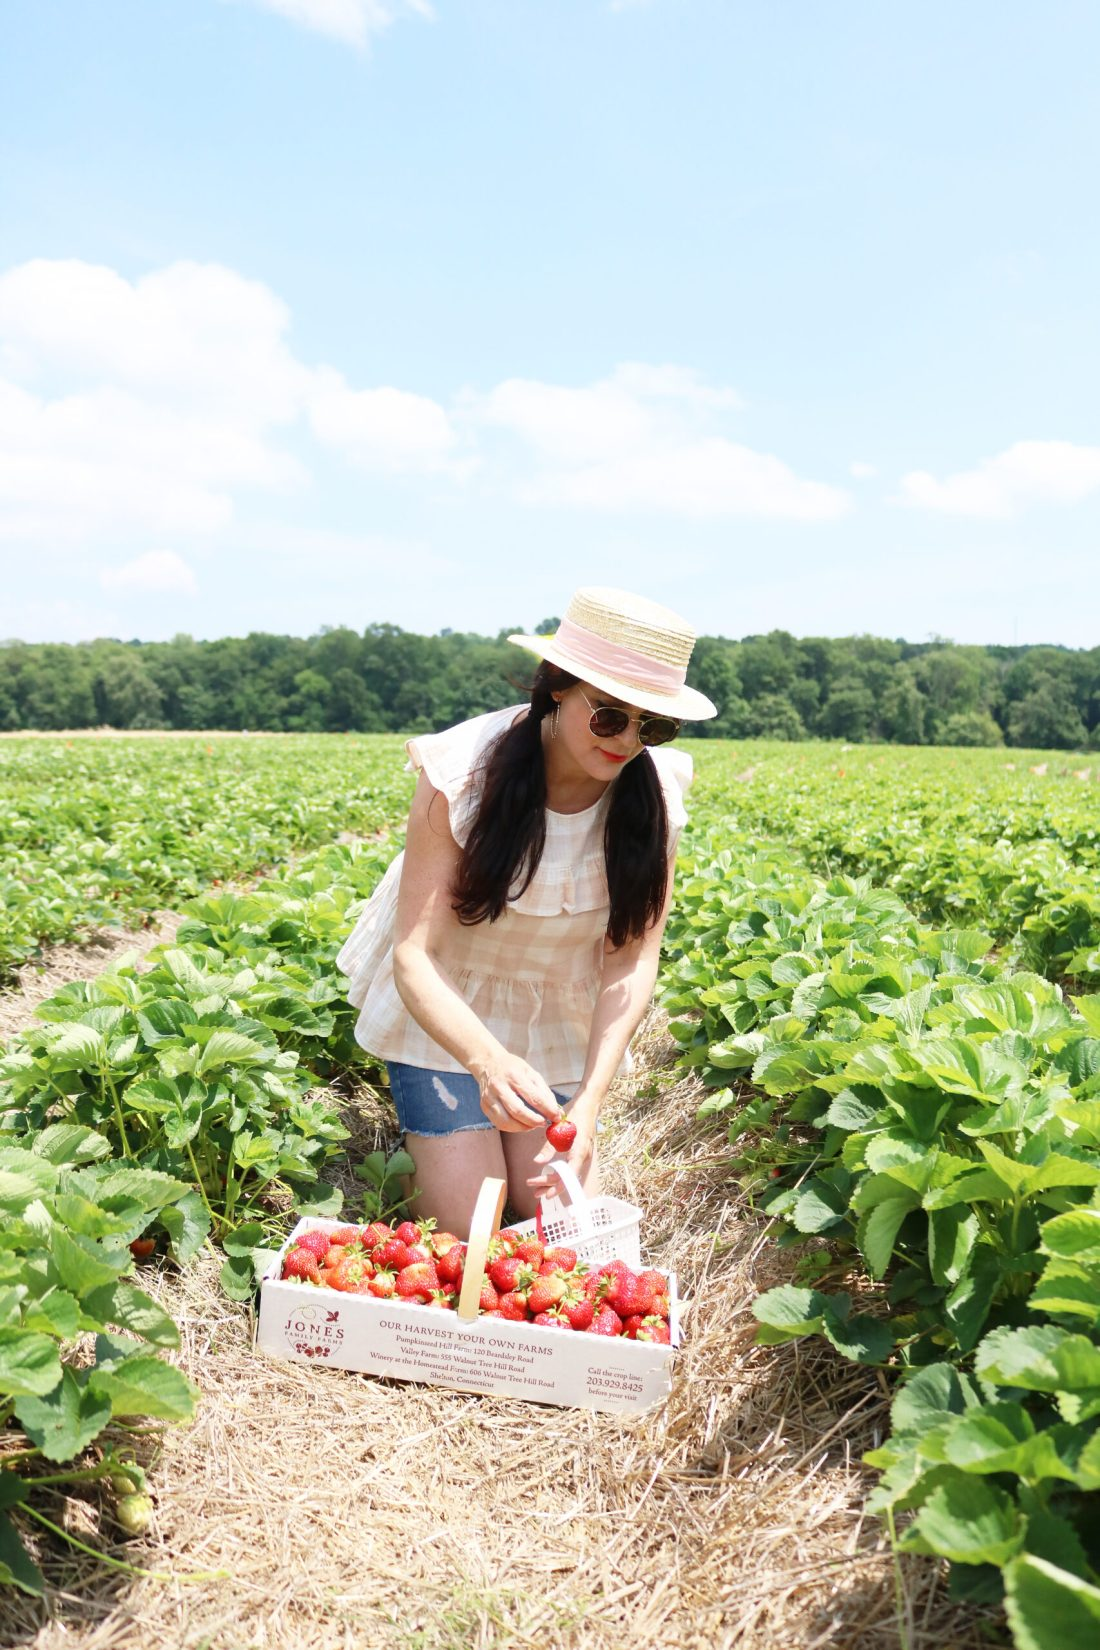 Strawberry Fields Forever, Annual Strawberry picking trip, summer fruit picking, Jones family Farm, New England life, What to wear when strawberry picking || Darleen Meier Top CT Lifestyle Blogger #darleenmeier #strawberryfields